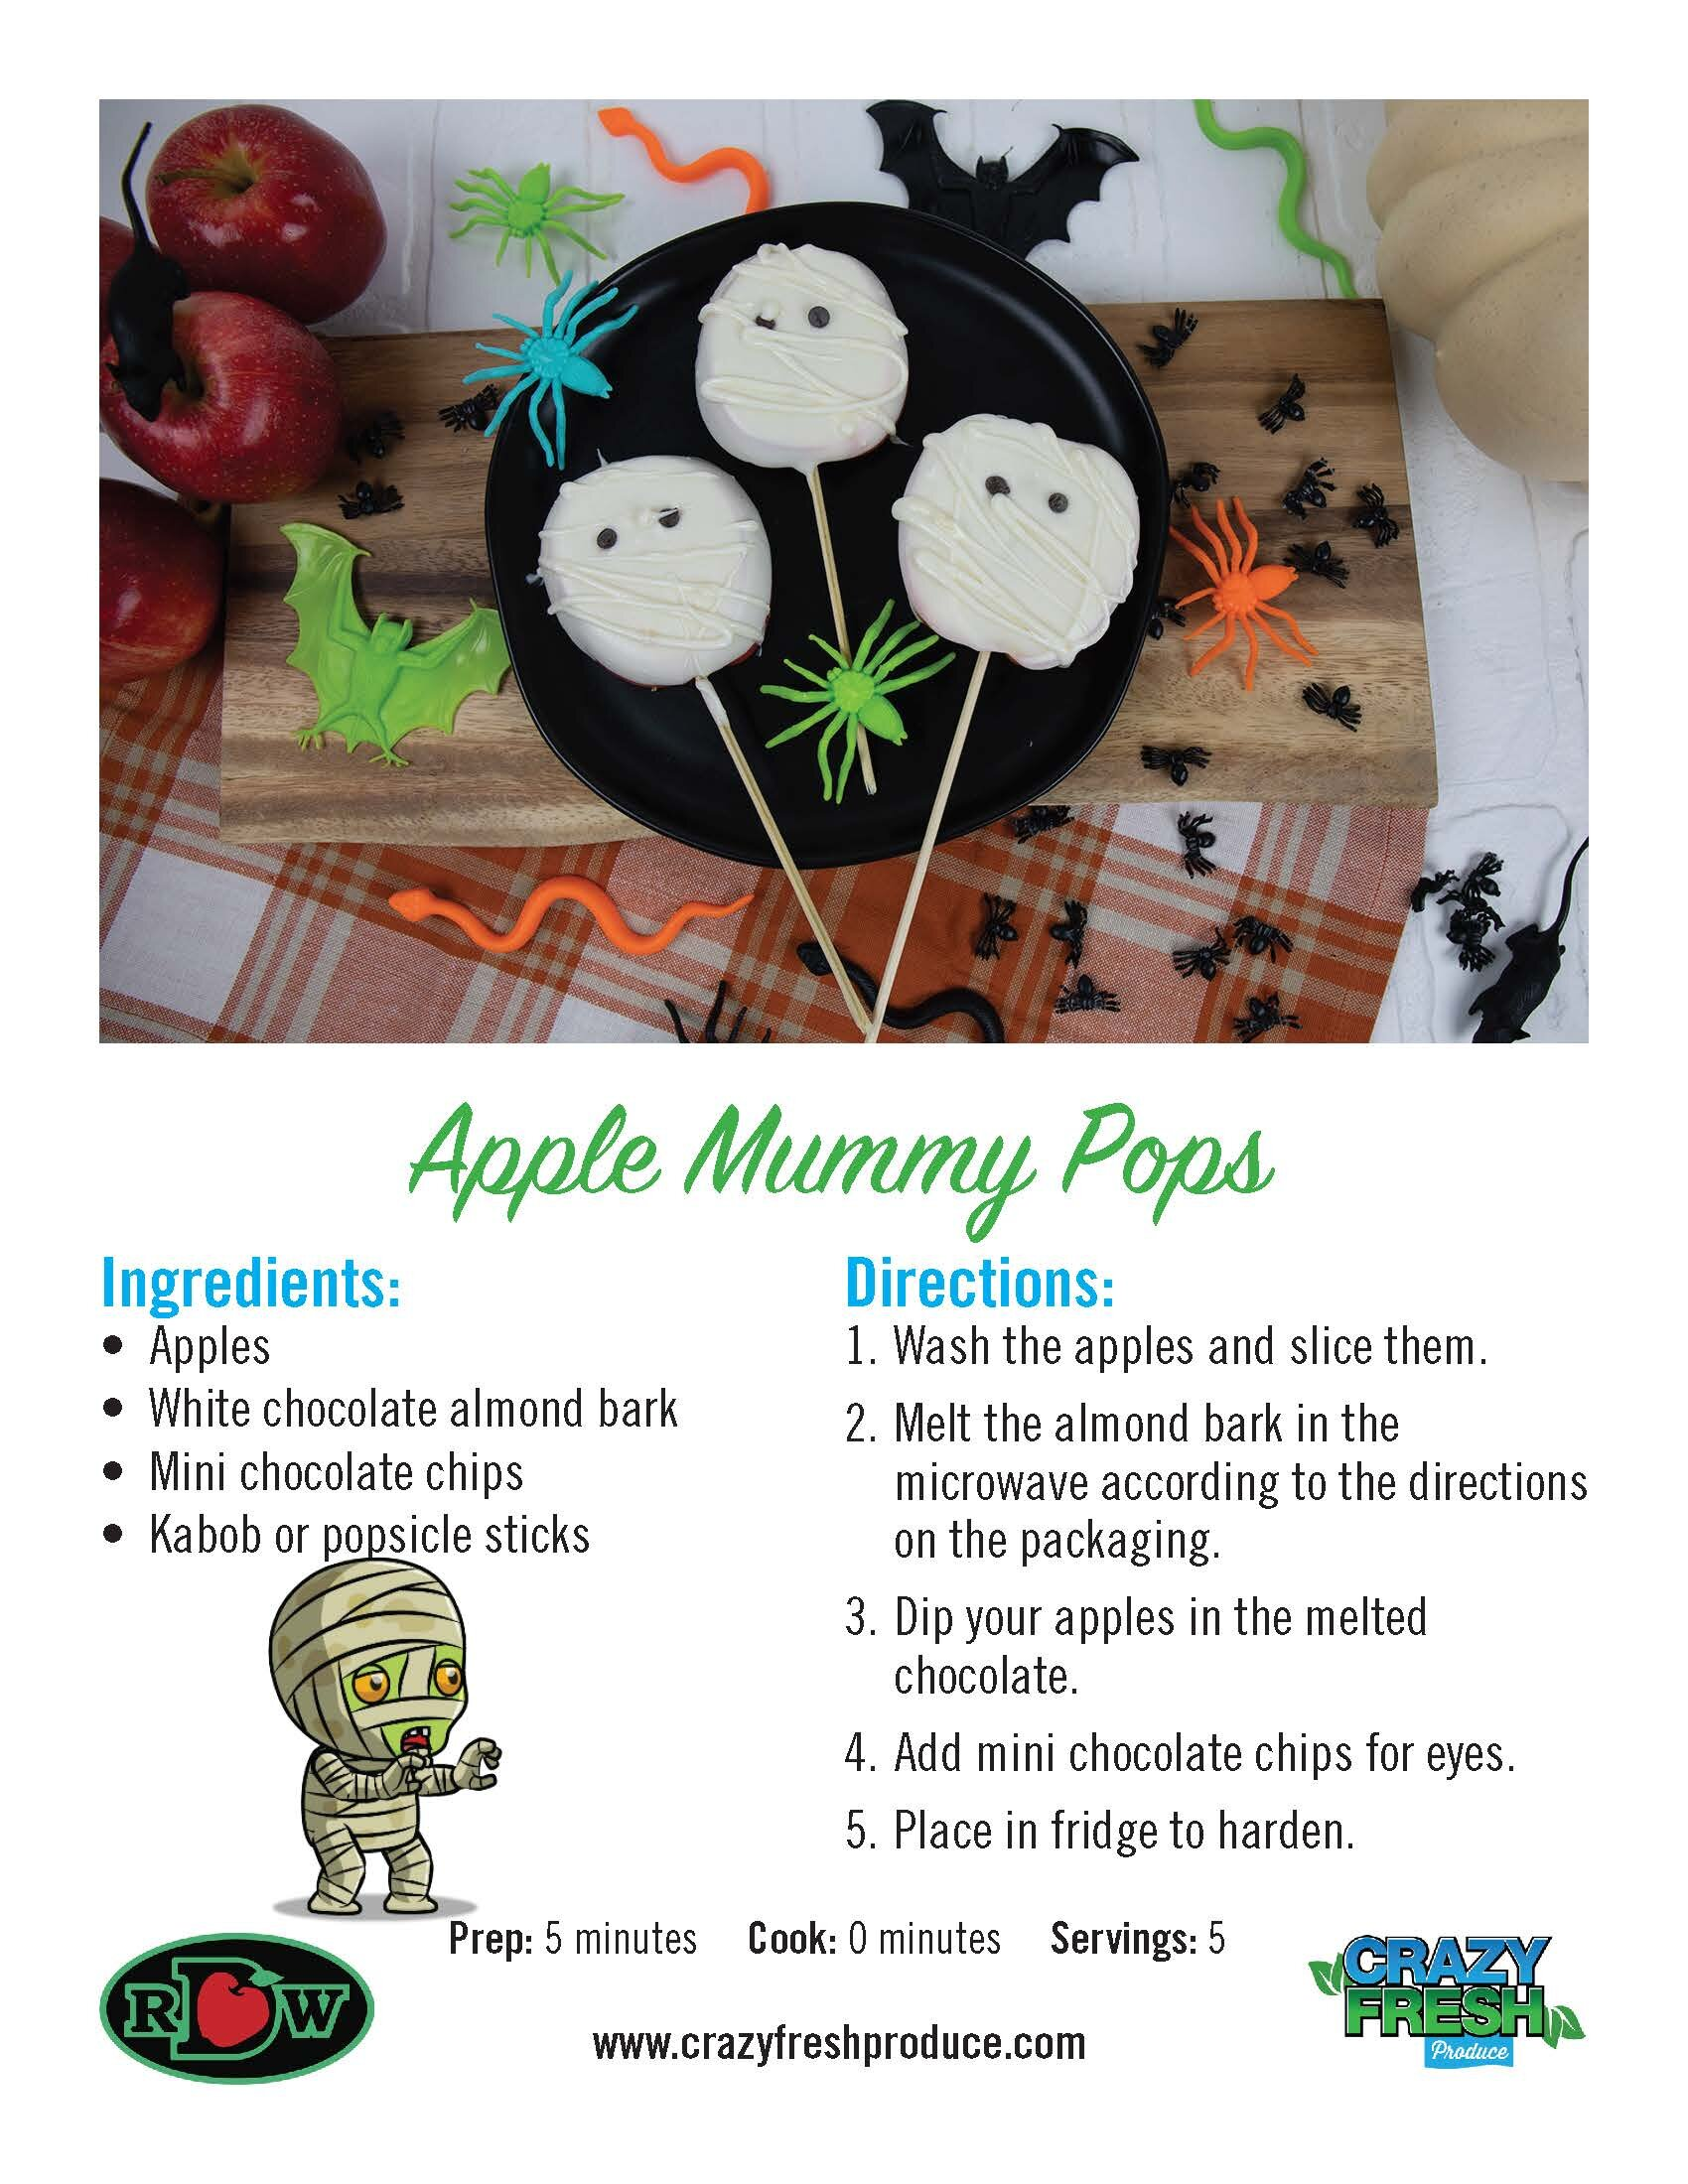 Chocolate apples just got a makeover for Halloween. Try these creepy mummy apples with your kids this holiday!